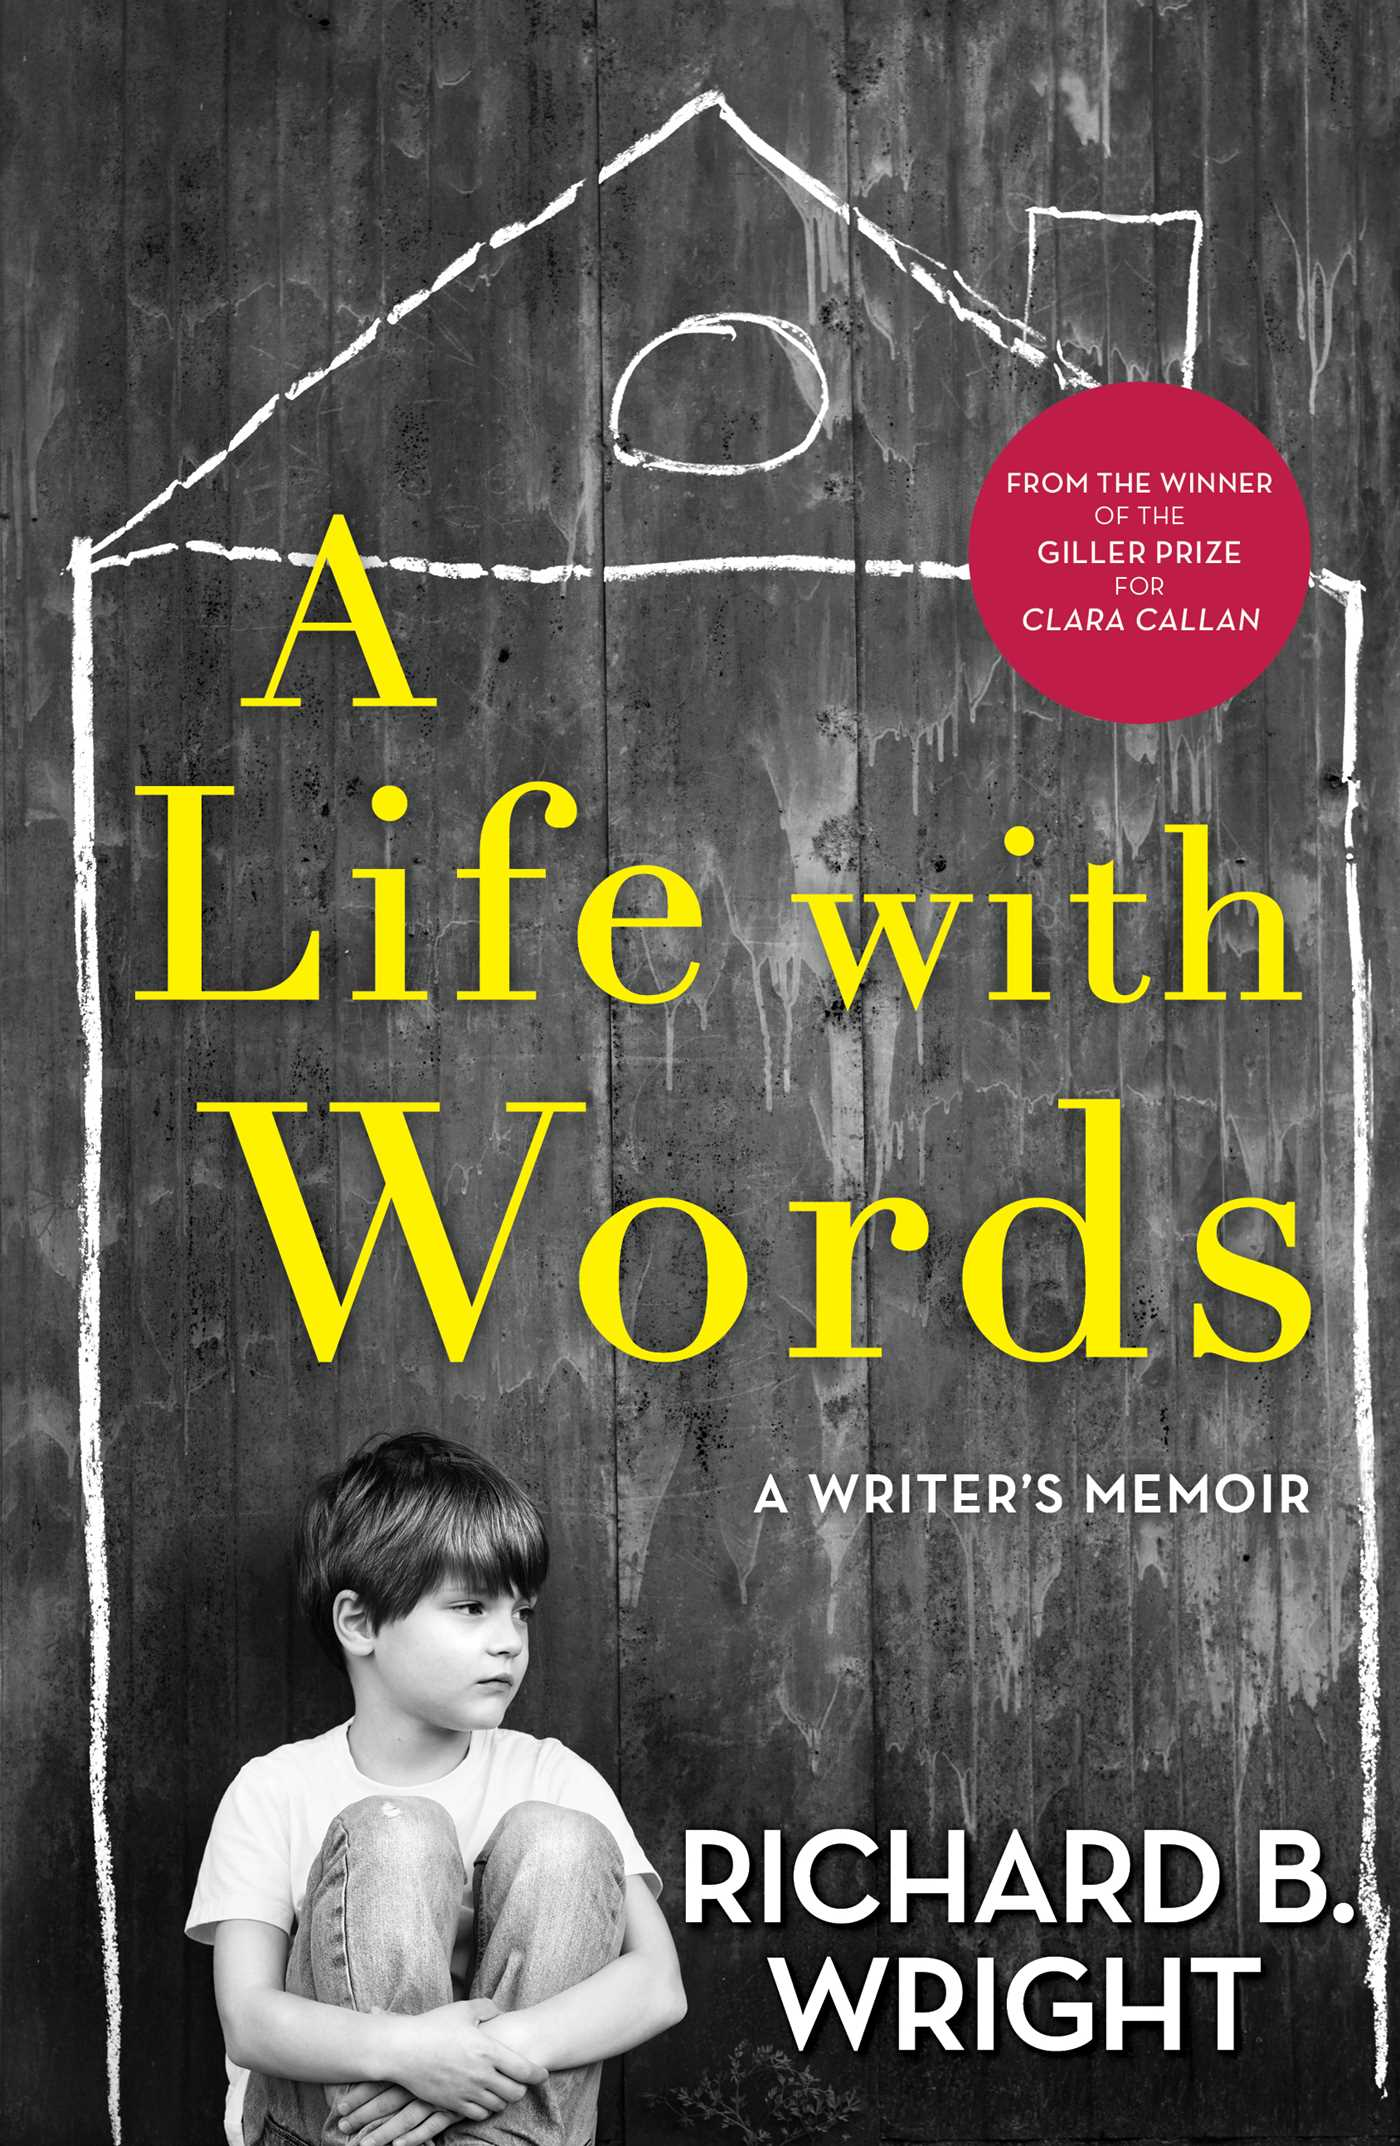 the influence of richard wrights life on his writing The enduring importance of richard wright  writing that, in 1947, wright and his wife packed their bags and moved to paris to escape the humiliation they faced as .